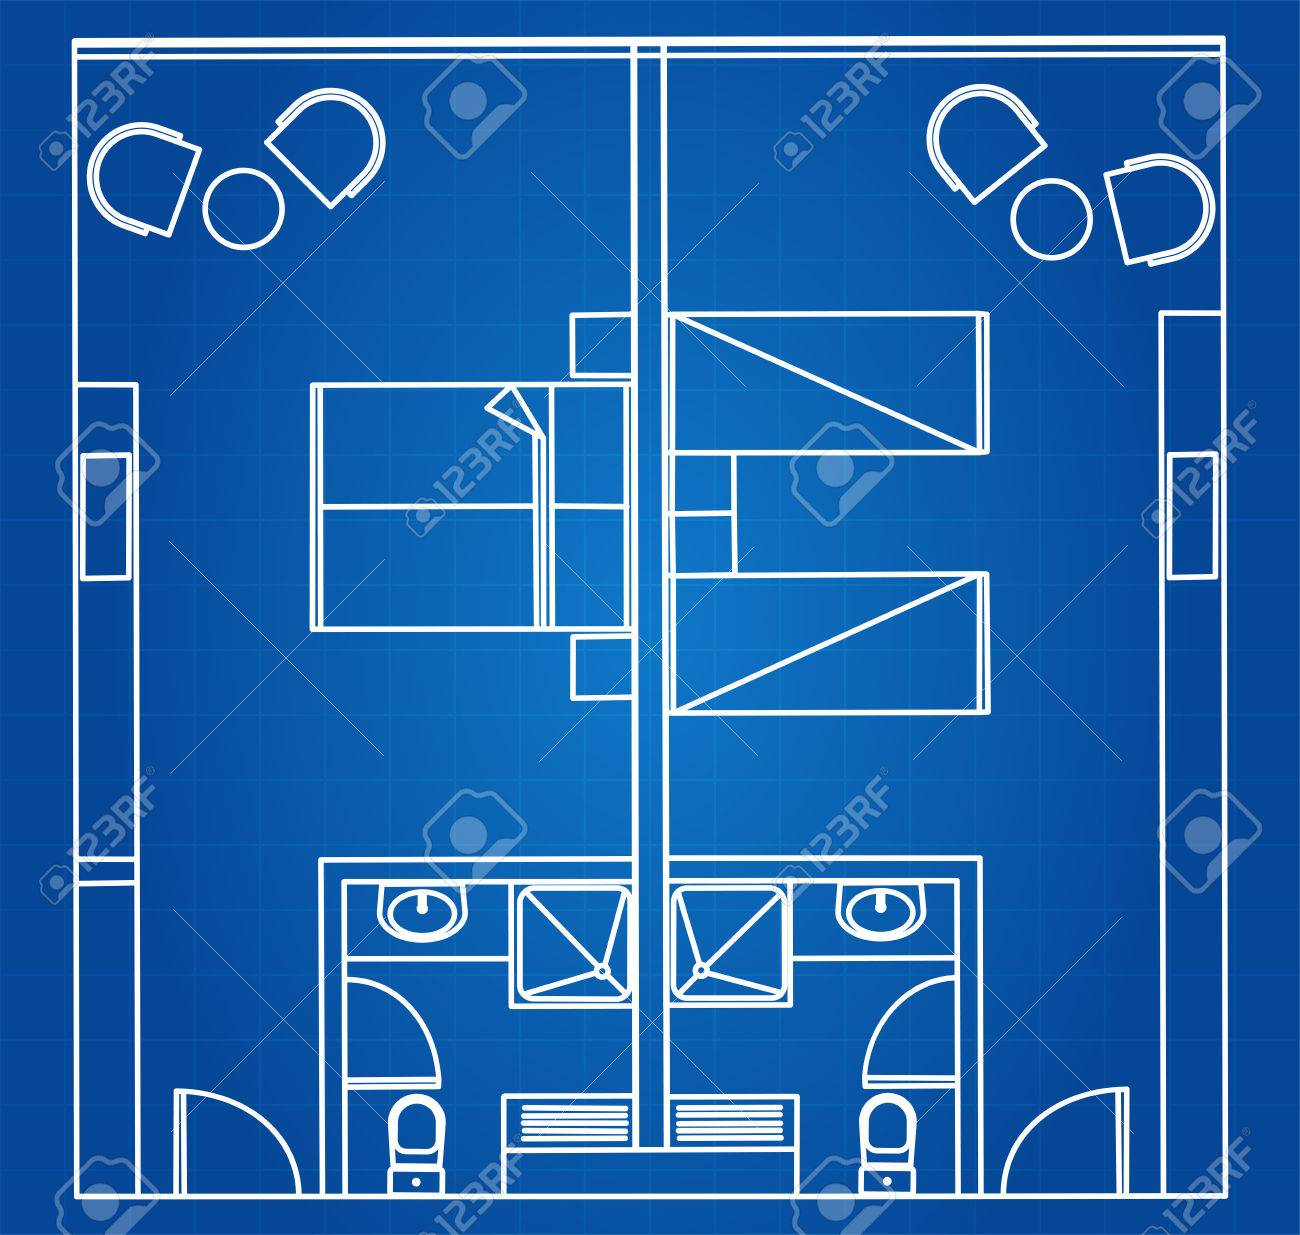 Architectural Blueprint Vector Of Standard Twin And Double Hotel